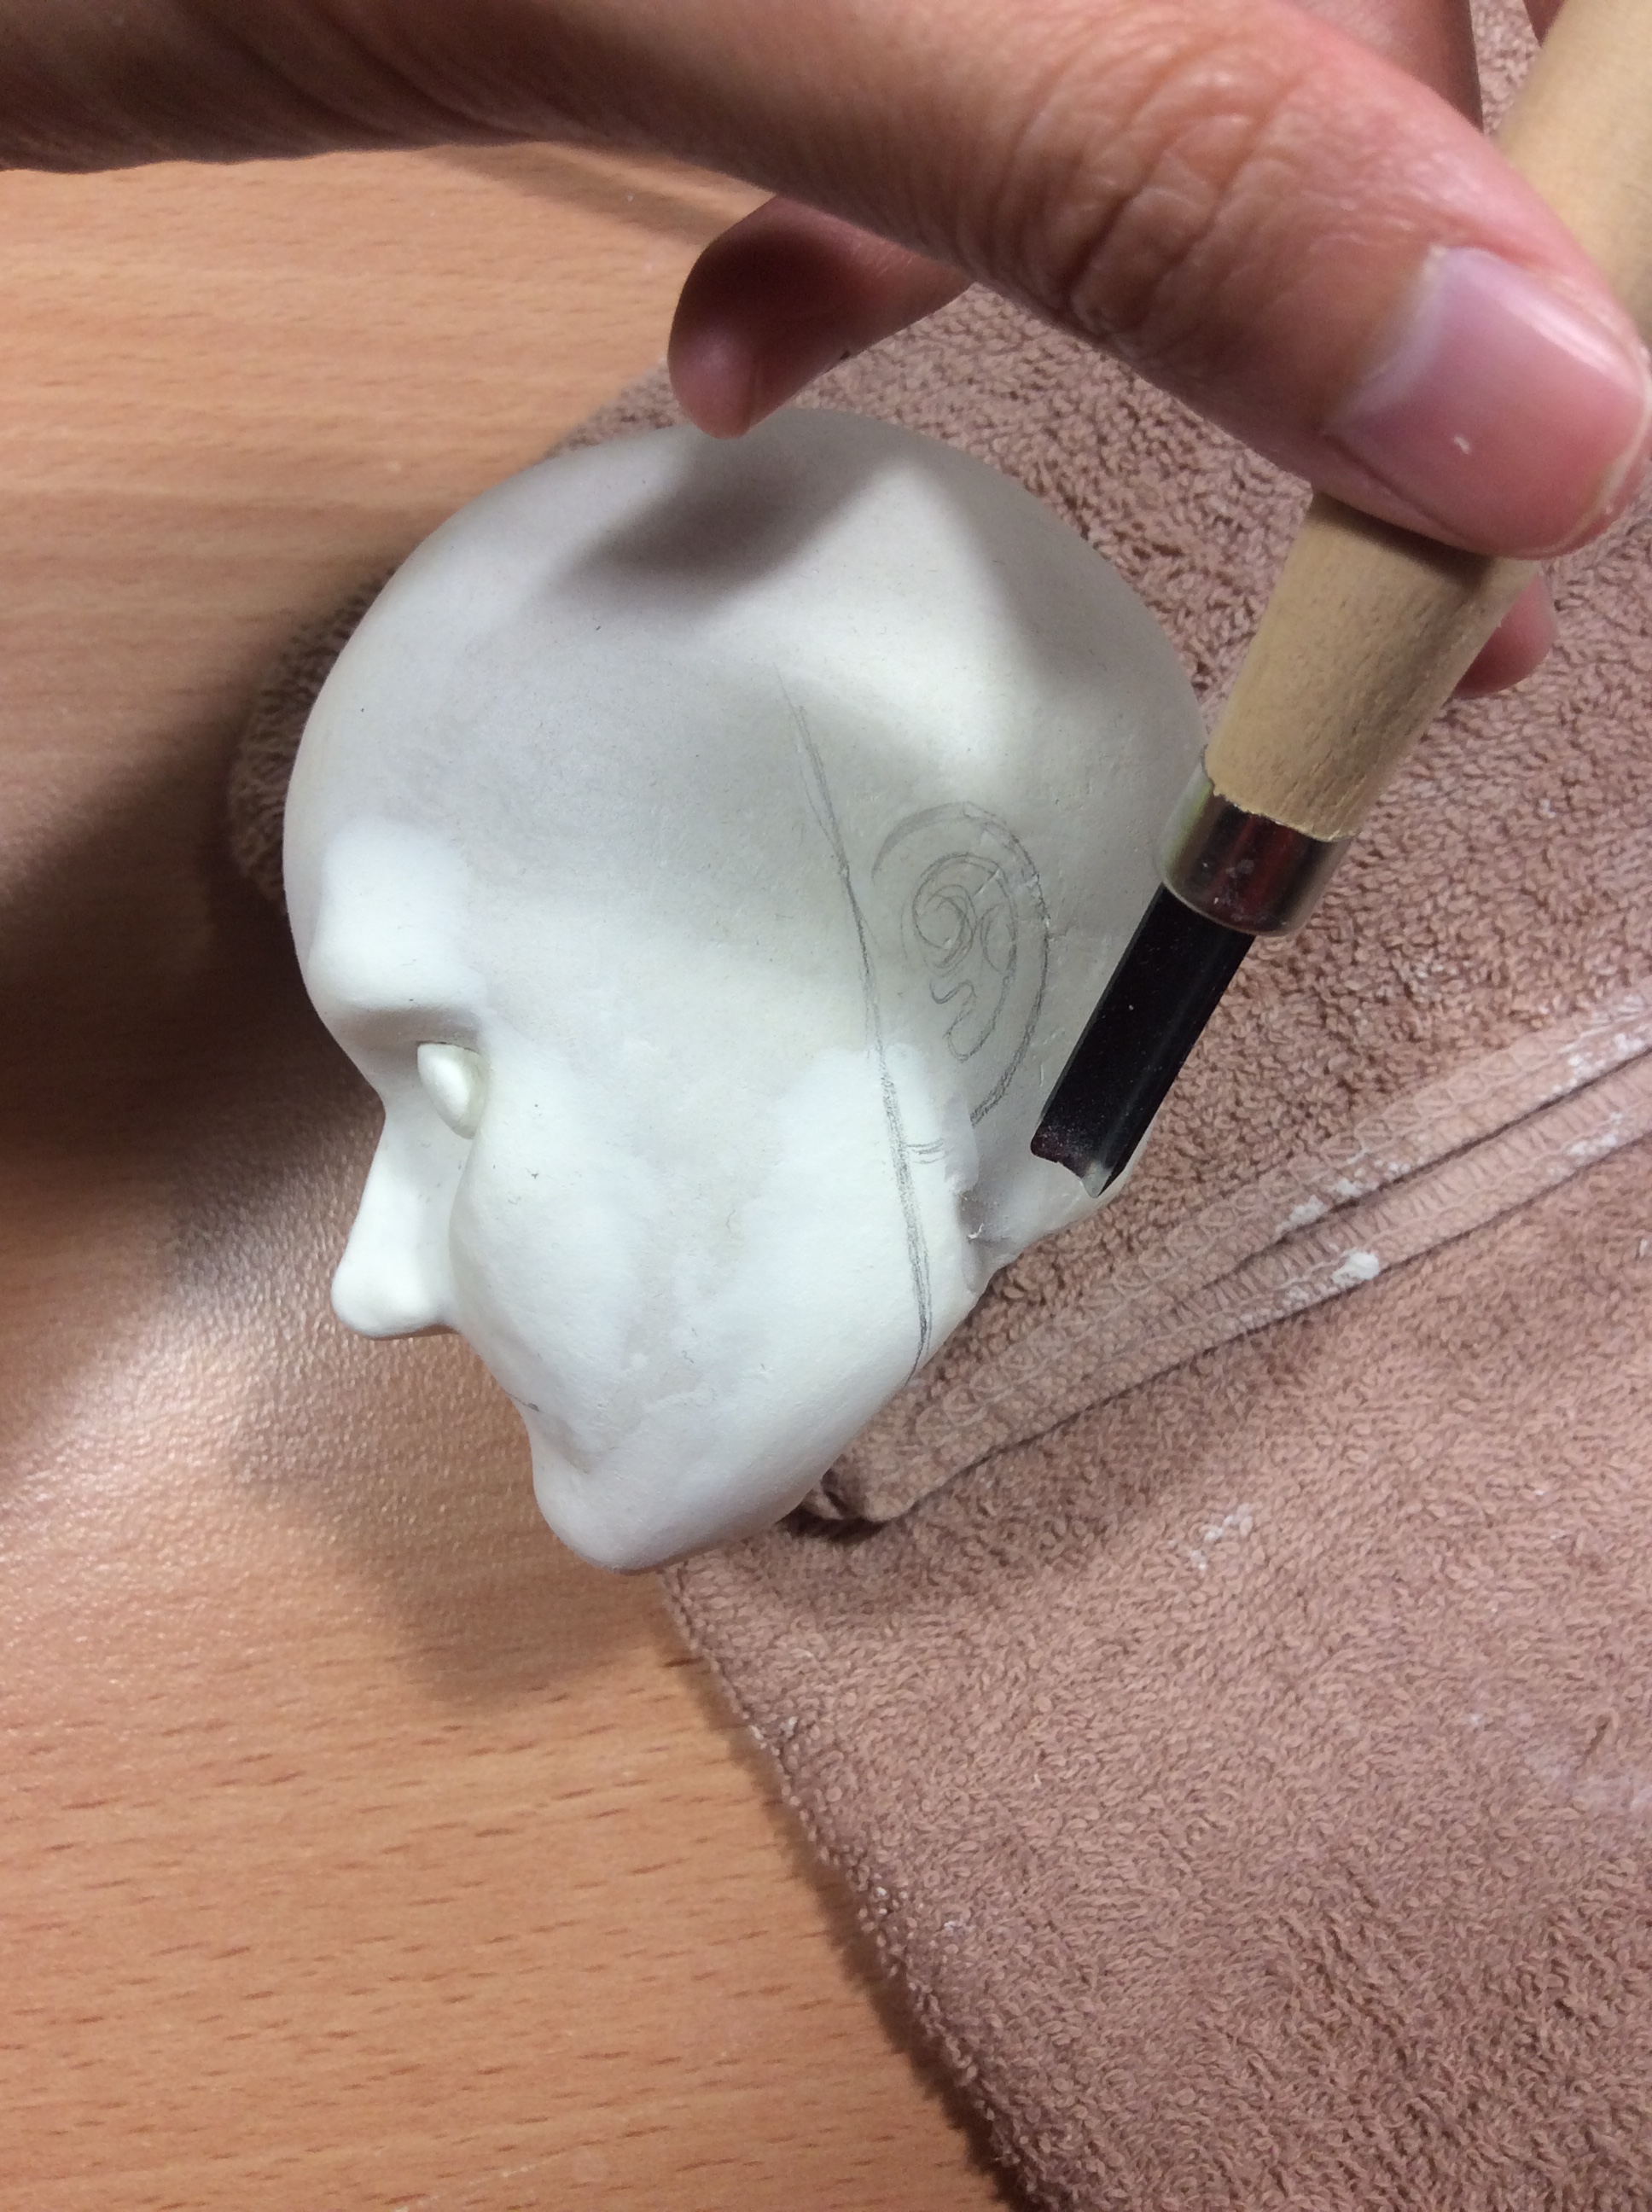 jemse---my-first-doll-head-making-progress-diary-part-2_32374193086_o